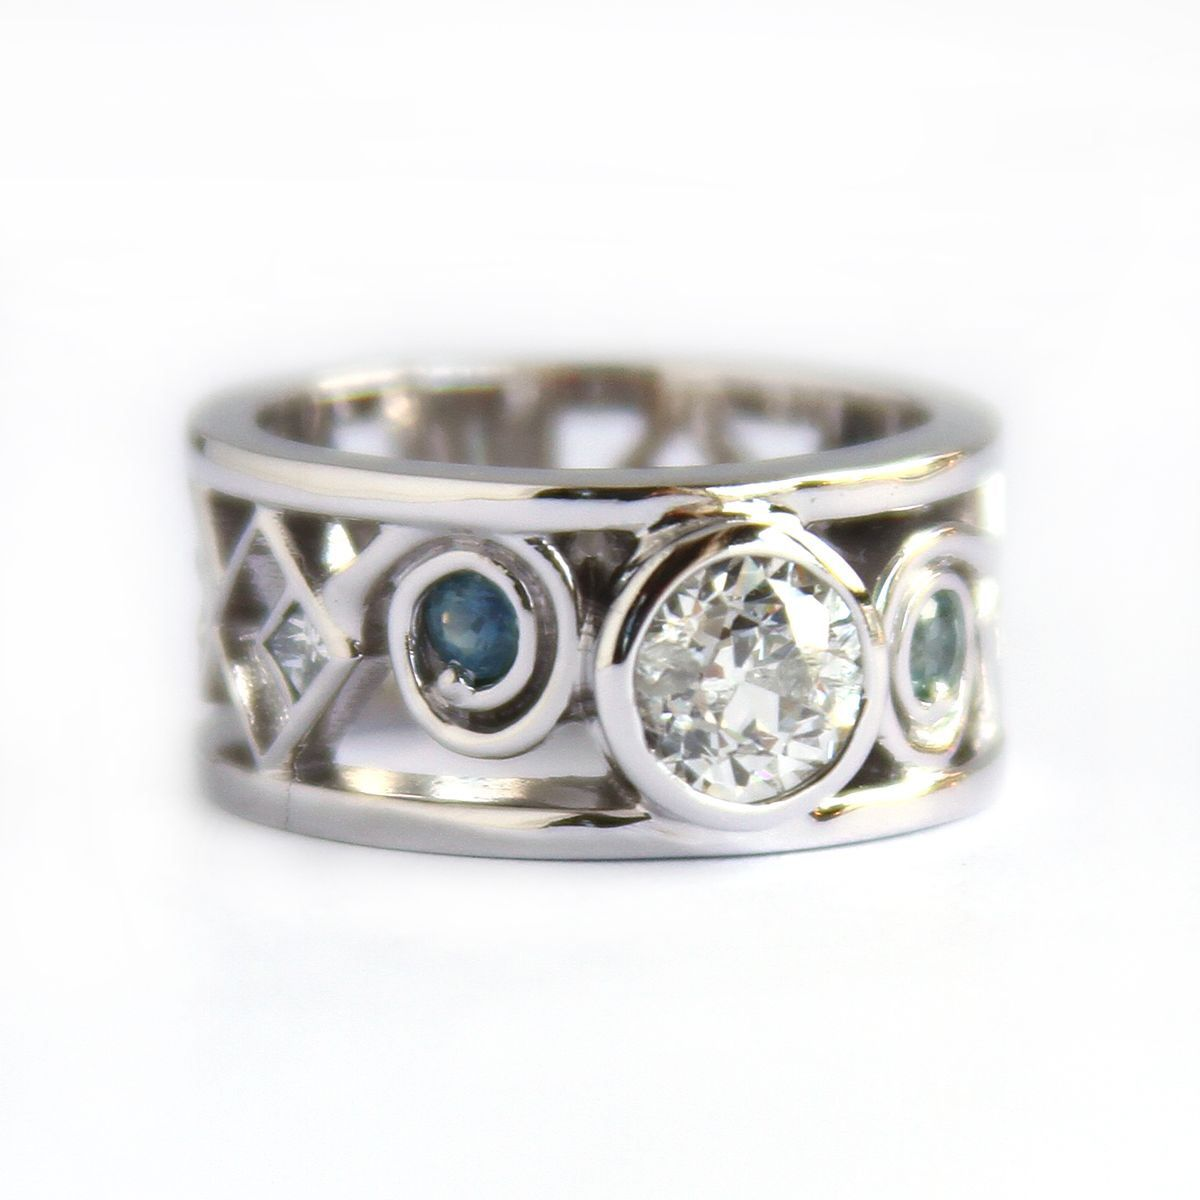 Redesign Wedding Ring After Divorce Ideas The Pinterest Jewel And Designs